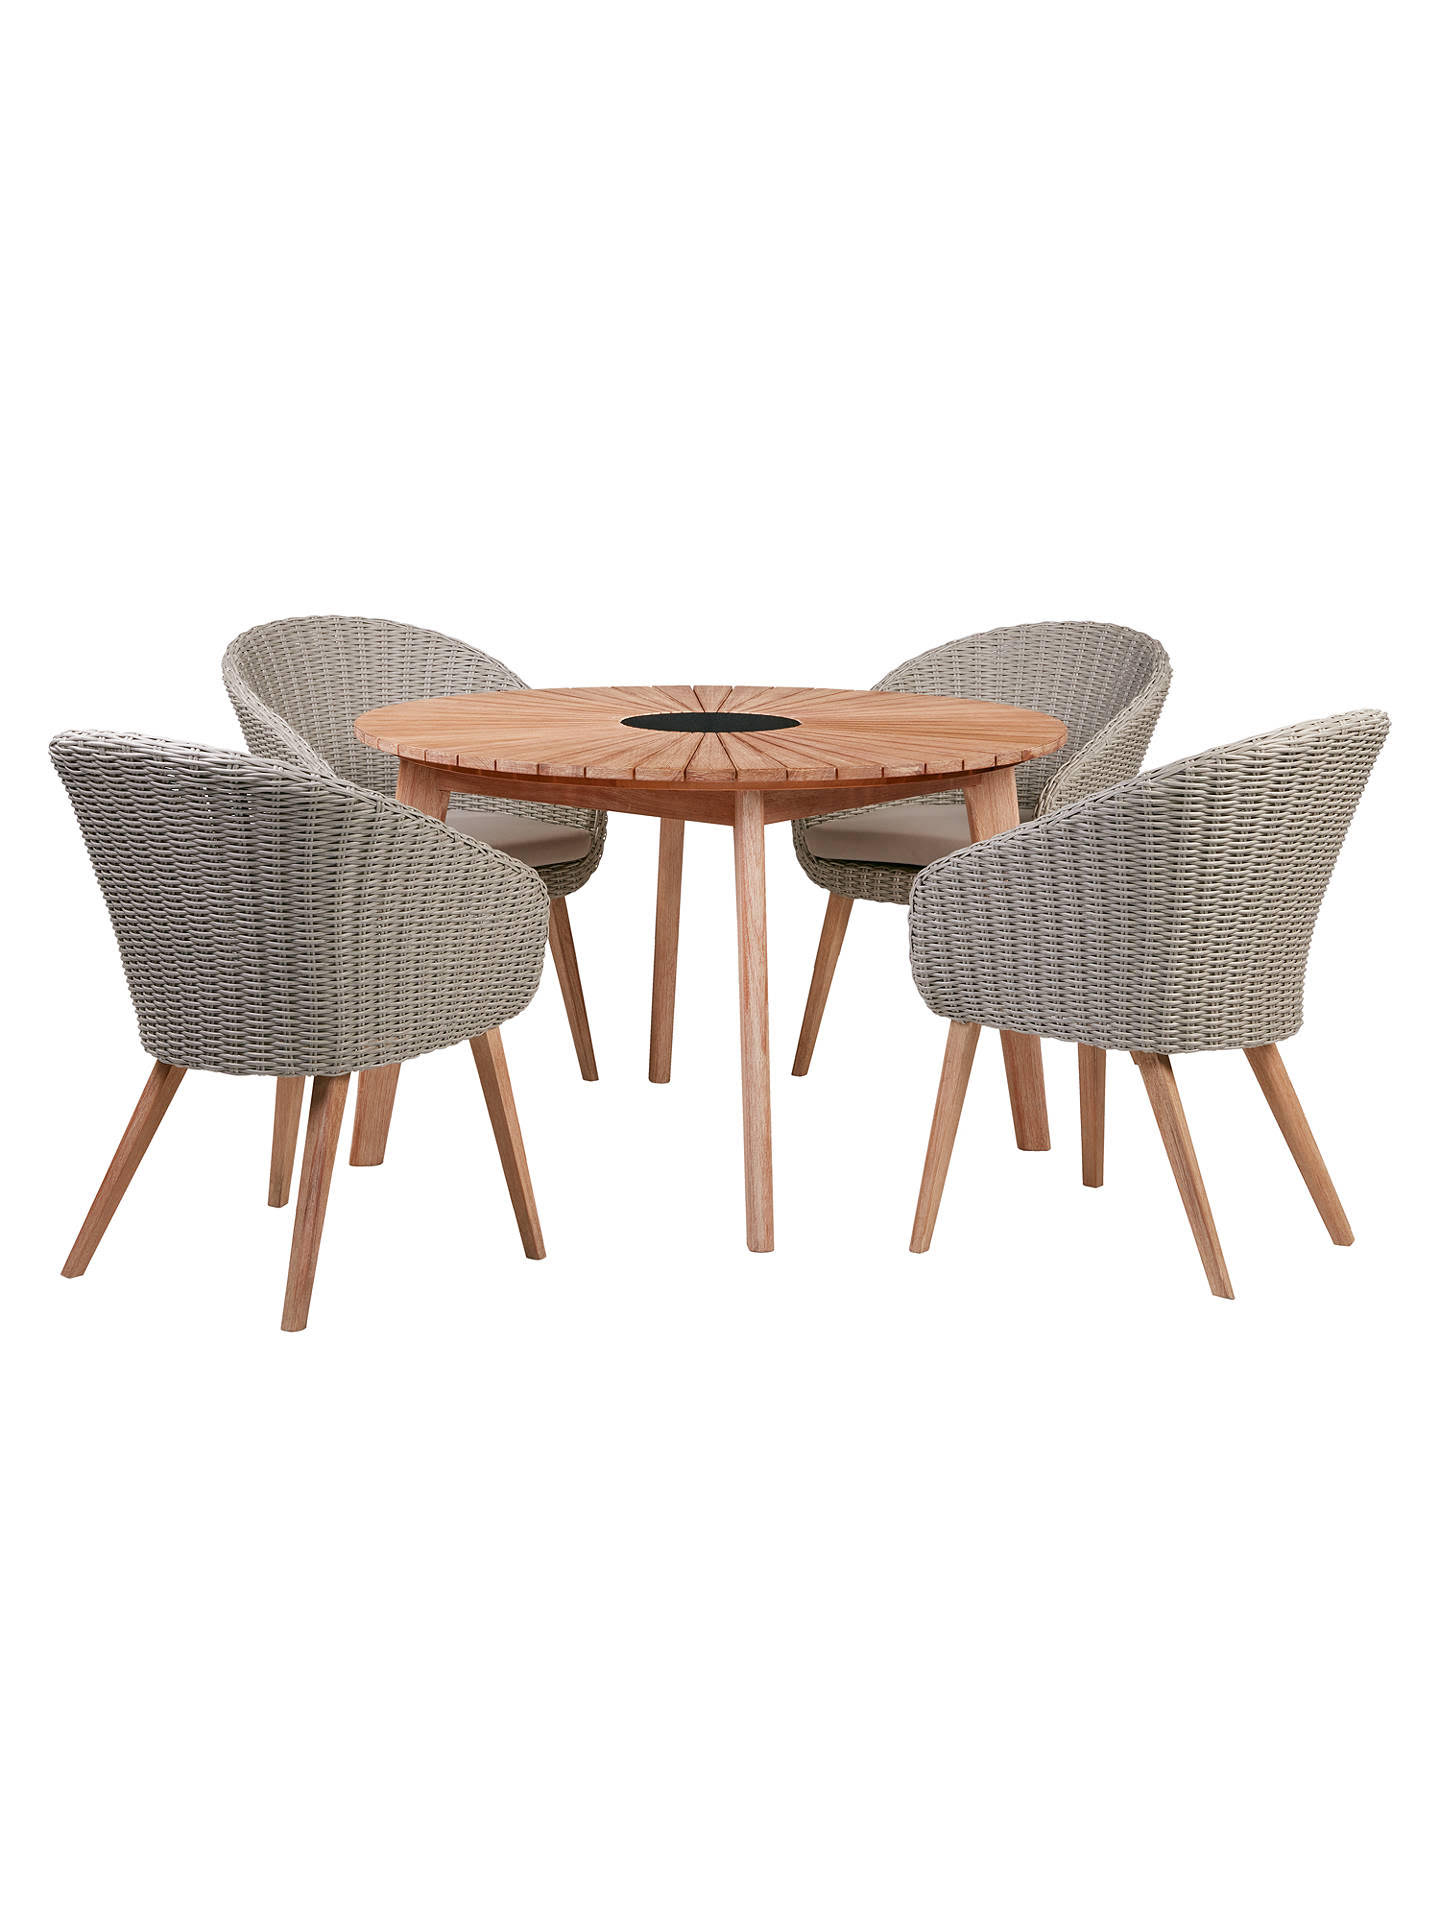 Lot 30292 - V Brand New To John Lewis Sol Four Seater Round Garden Table & Chairs ISP £999 (John Lewis) Stock